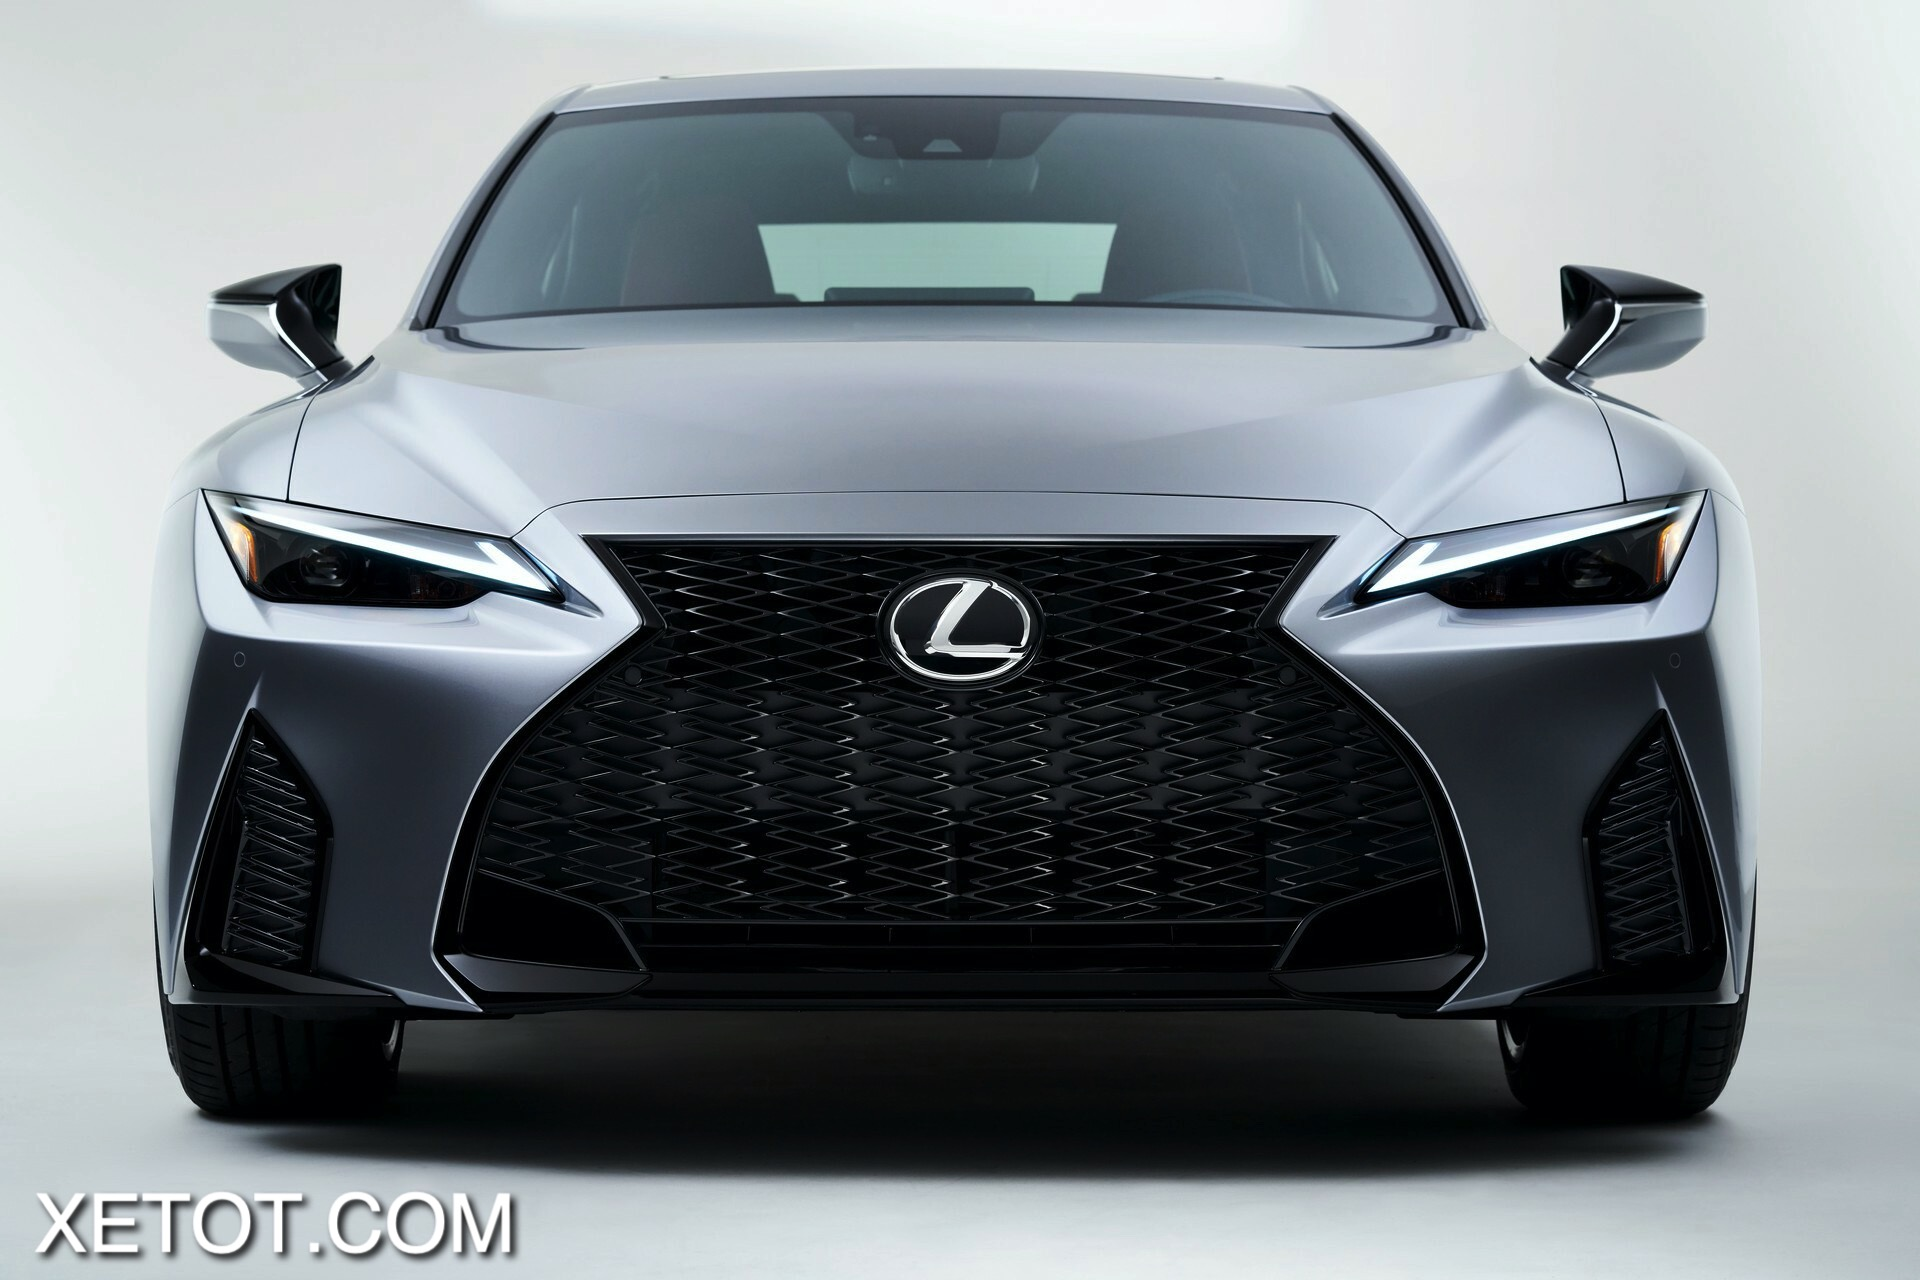 luoi-tan-nhiet-3d-Lexus-IS-2021-xetot-com